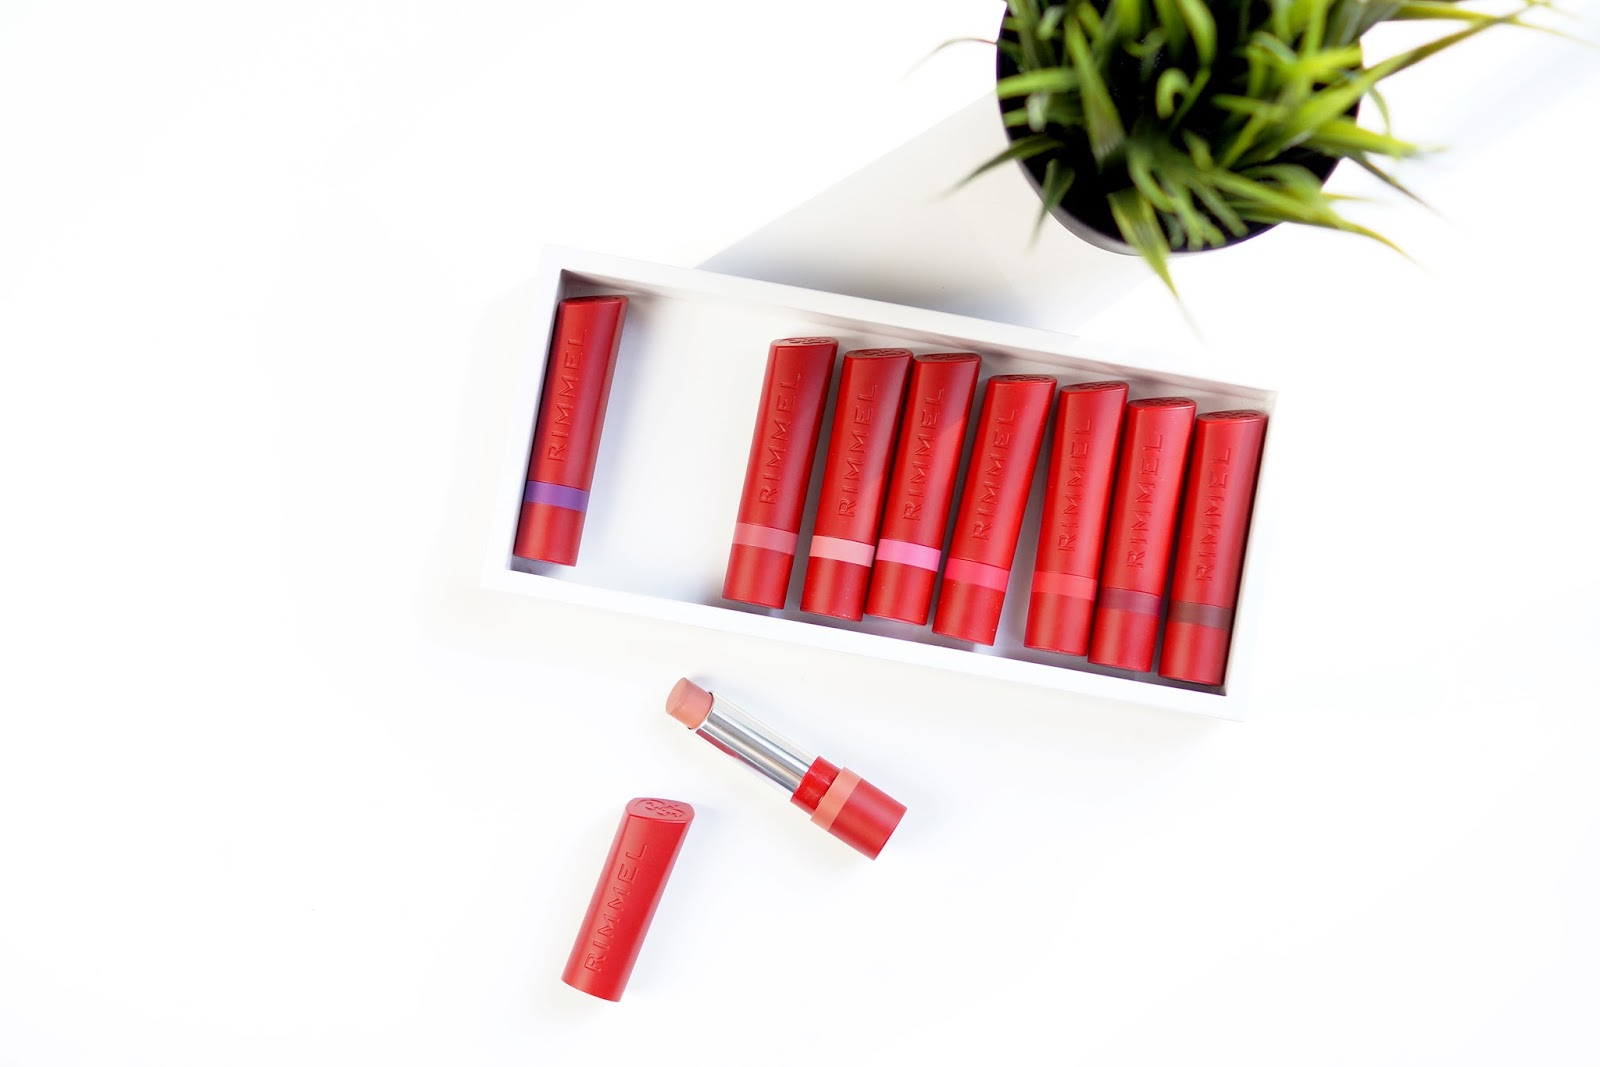 rimmel-the-only-one-matte-lipstick-review-barely-there-beauty-blog